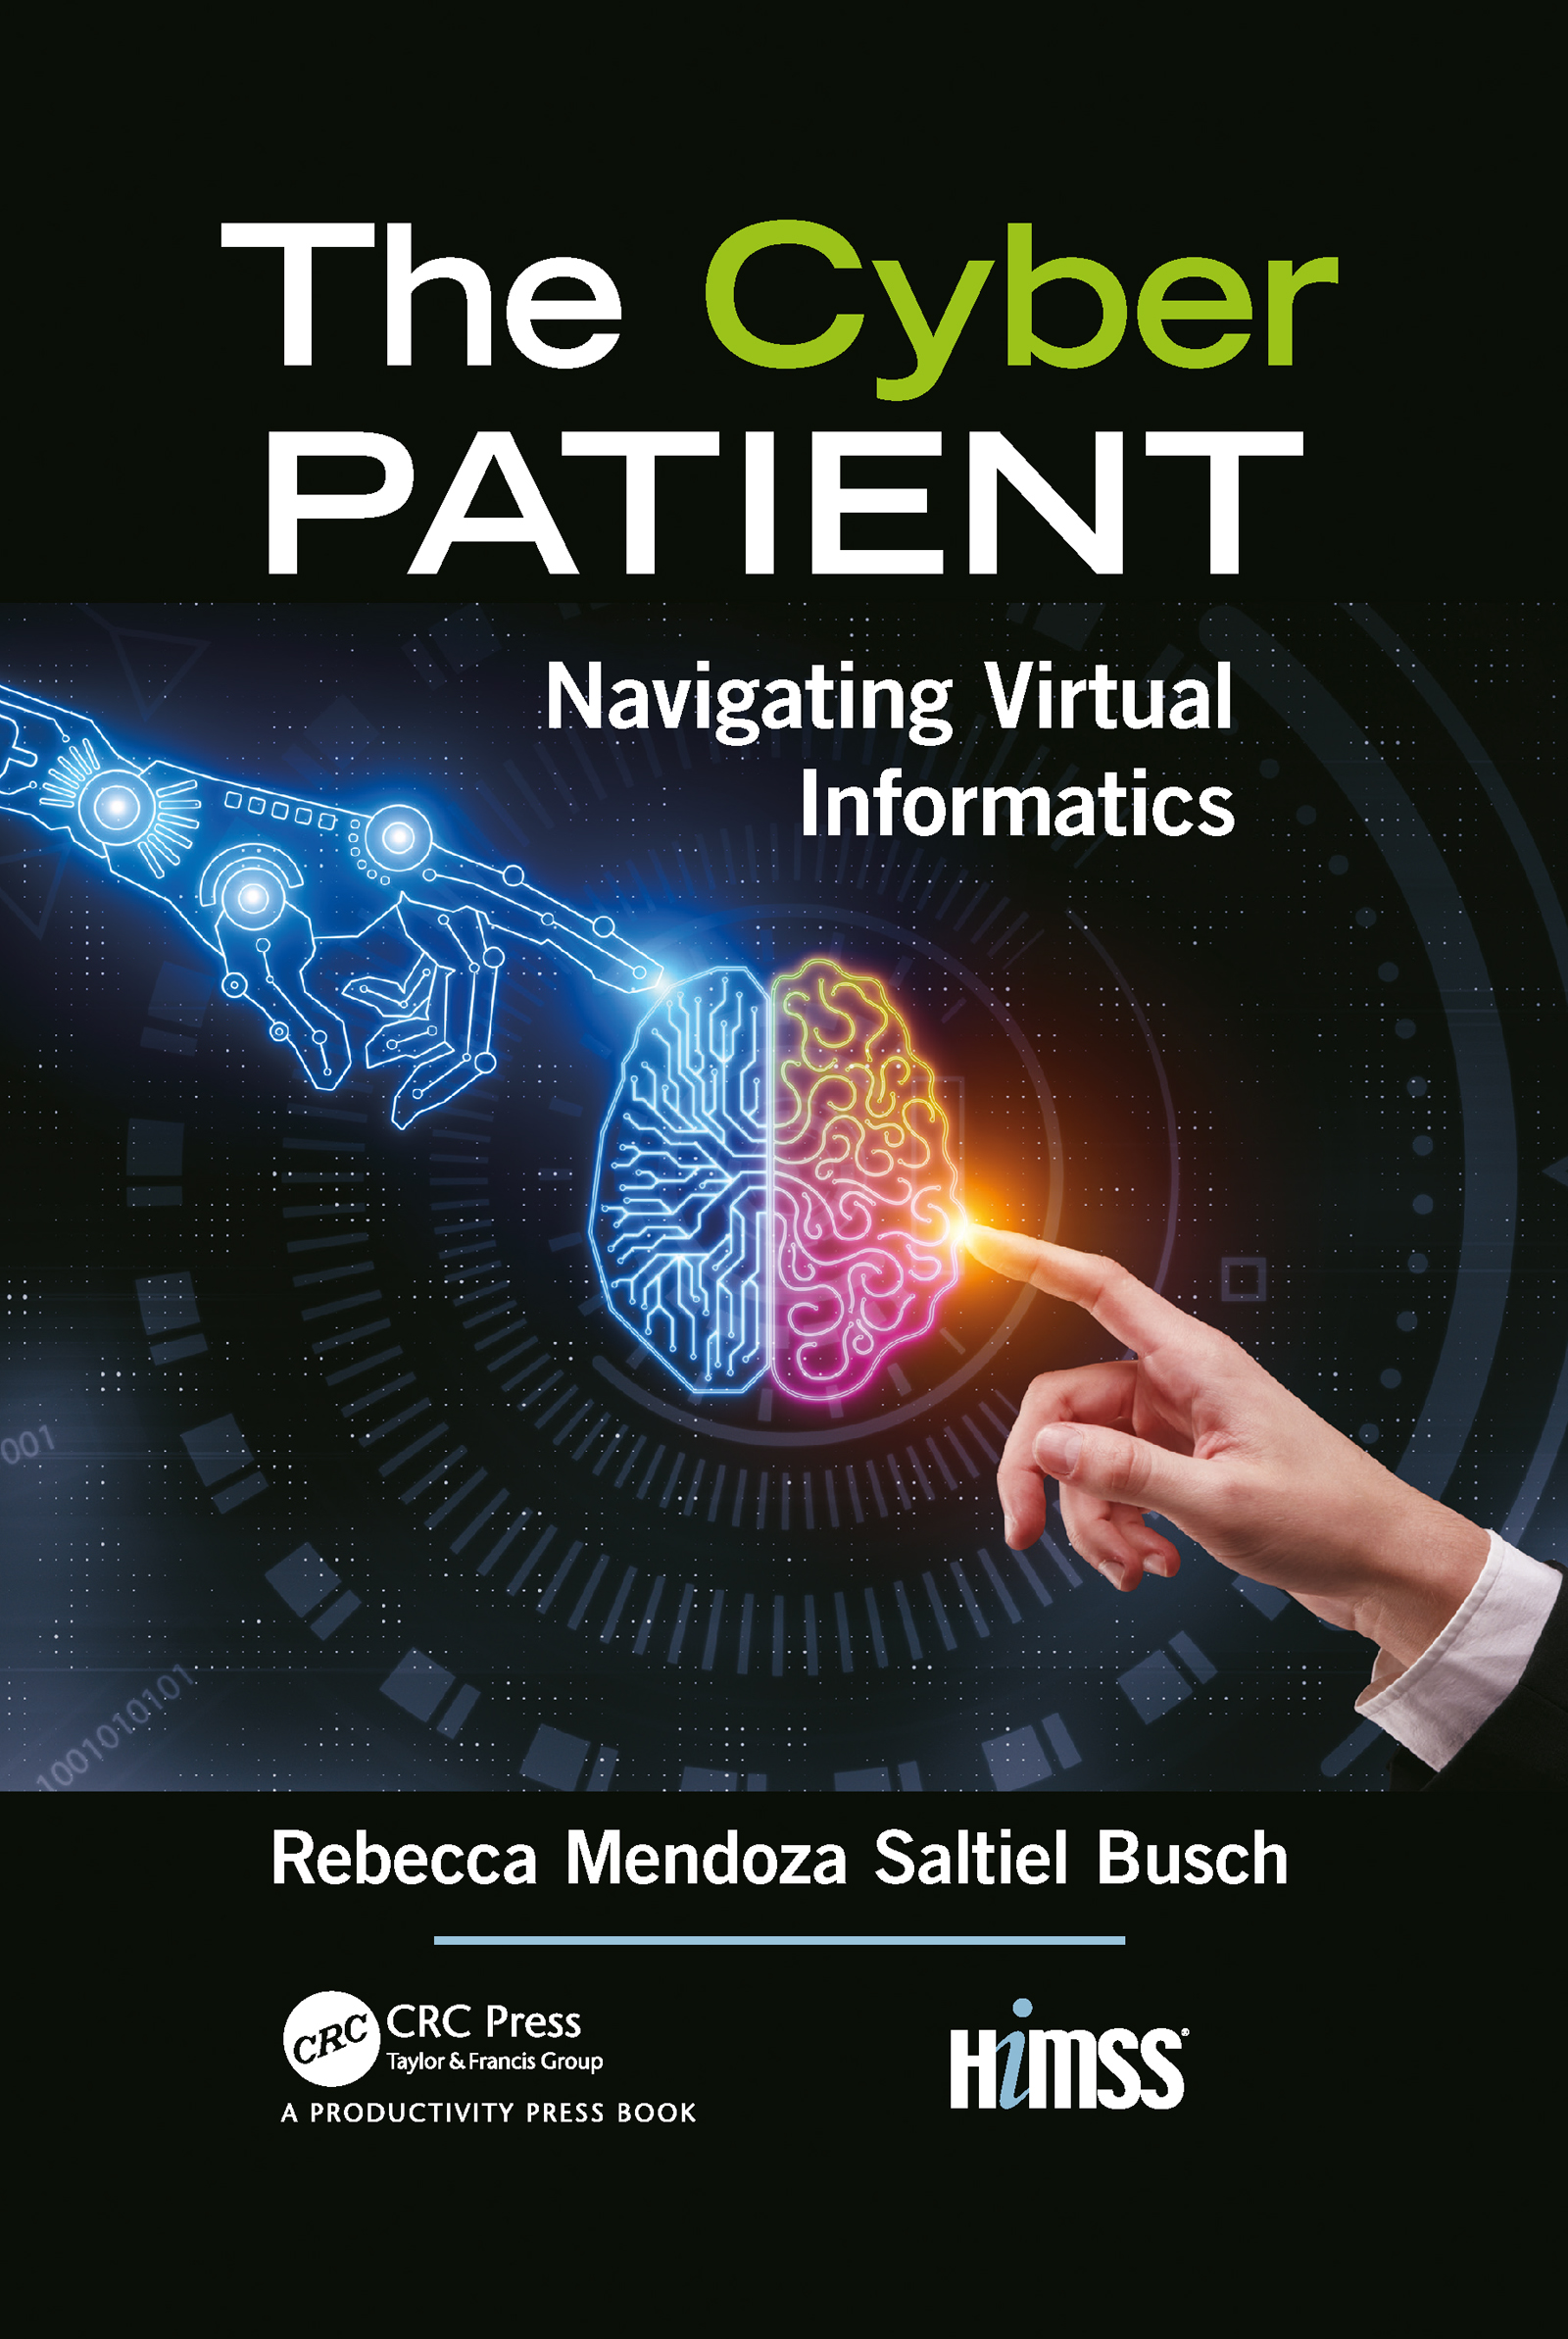 The Cyber Patient